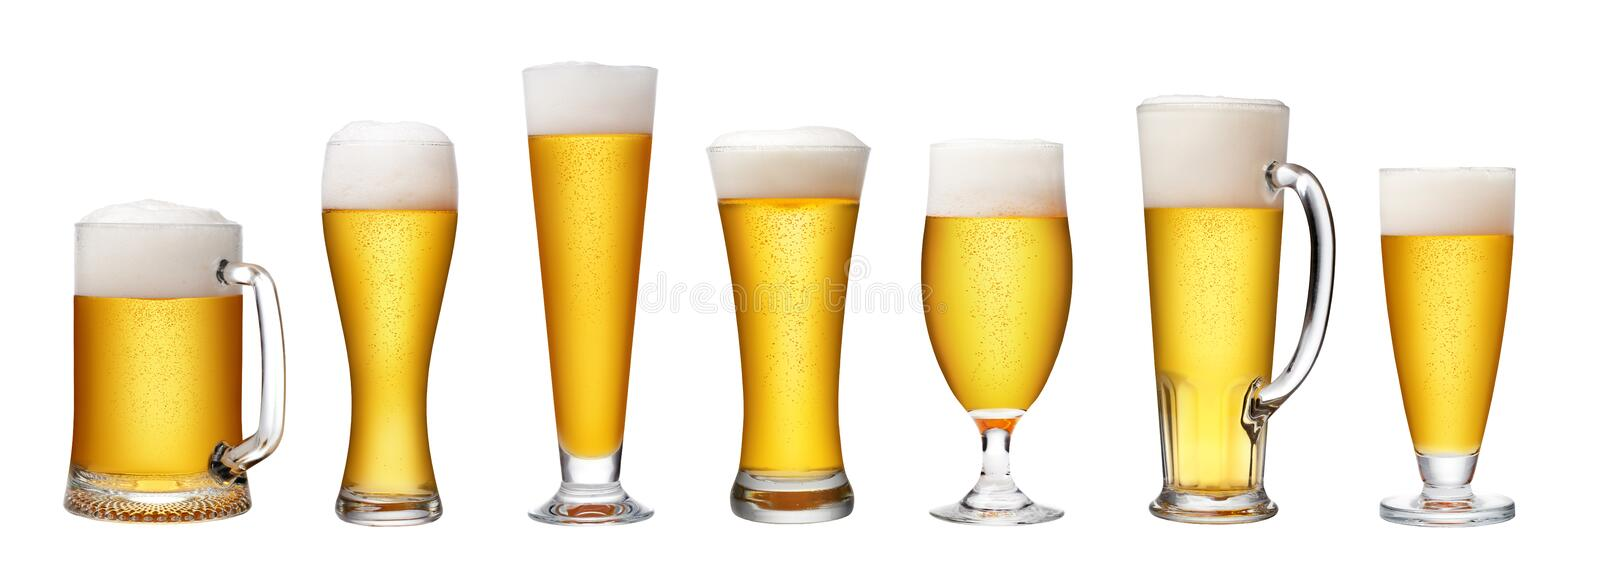 Set of beer glass. On a white background royalty free stock photos